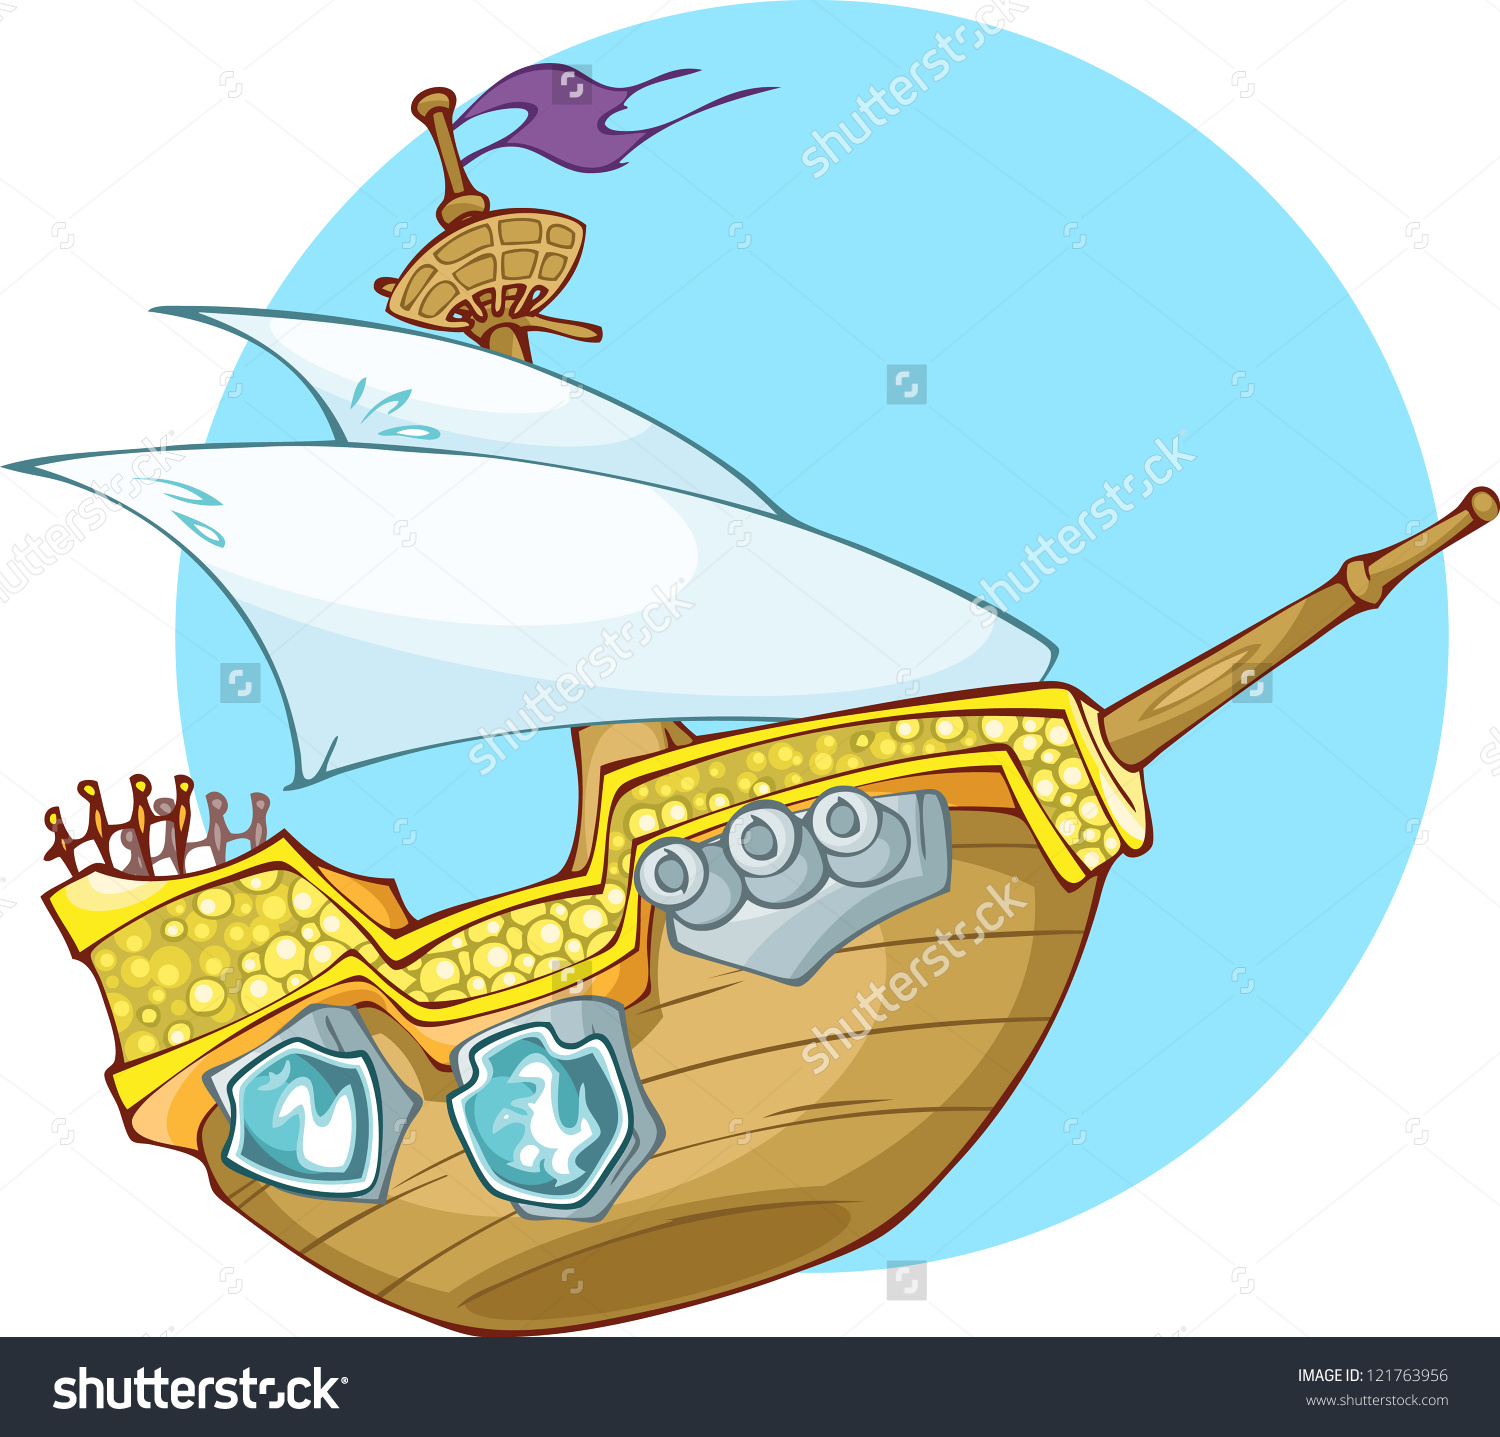 Illustration Shows Old Woooden Pirates Boat Stock Vector 121763956.